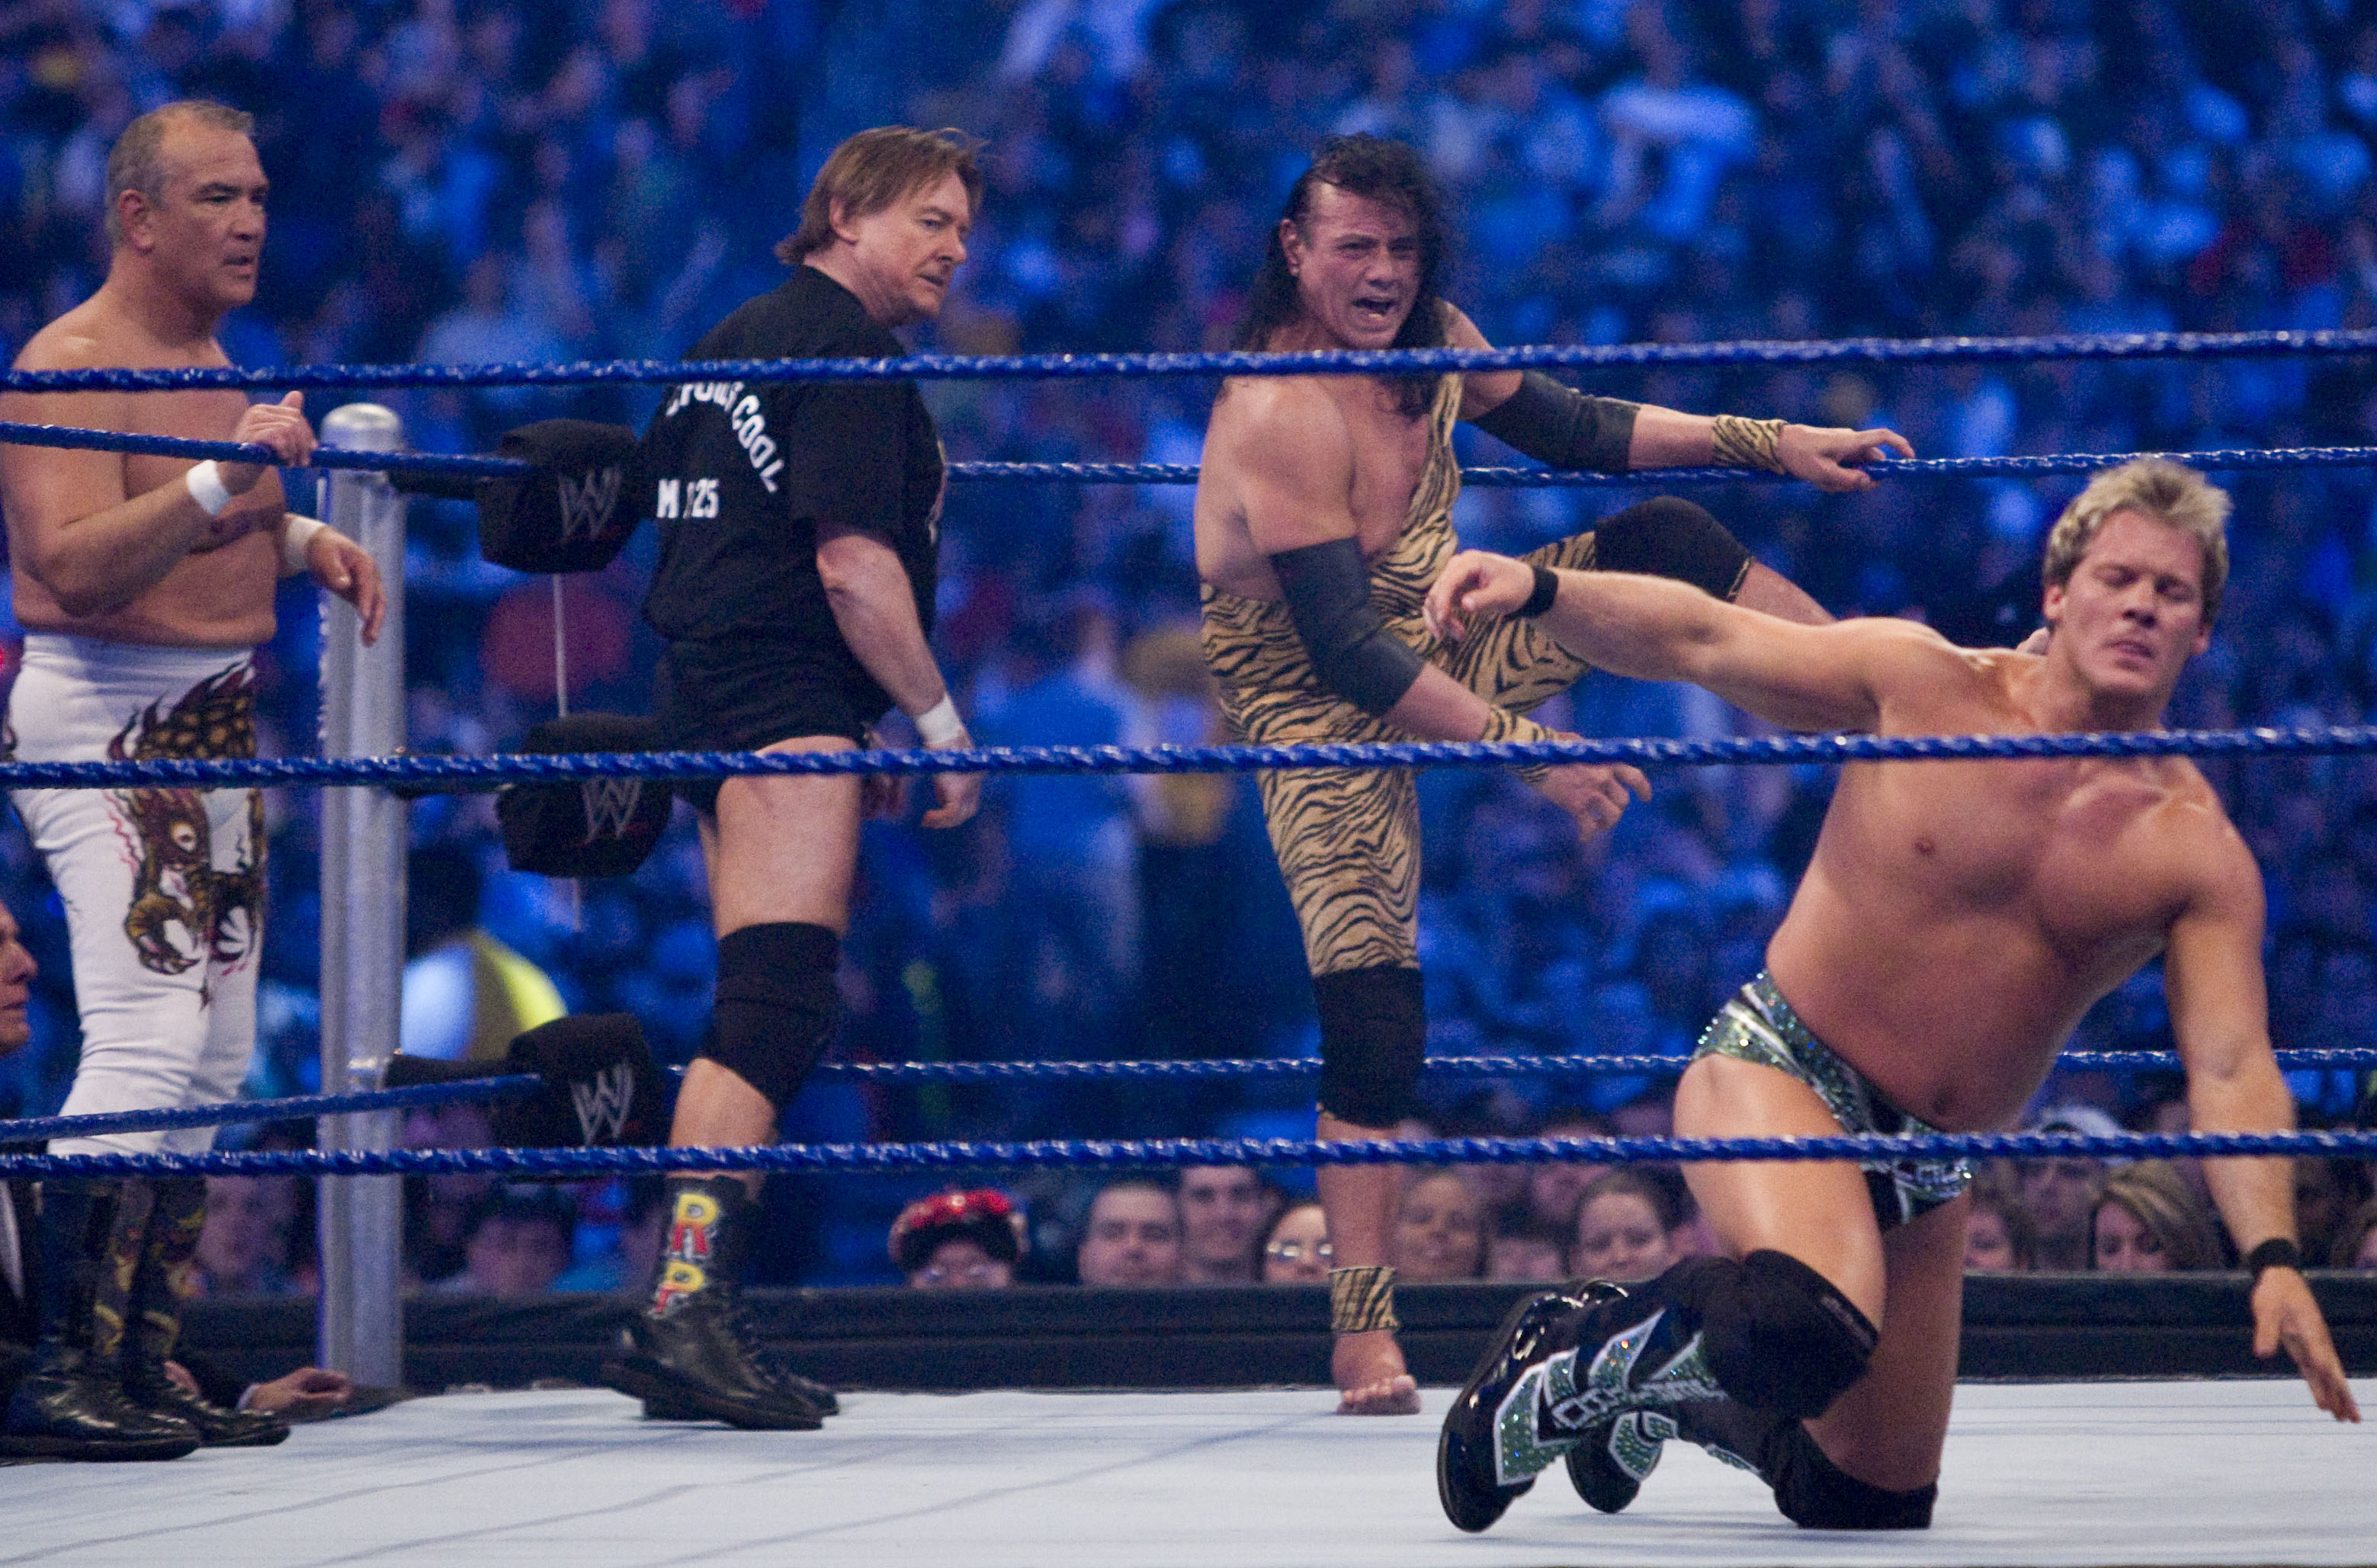 (L-R) Former professional wrestlers Ricky  The Dragon  Steamboat and  Rowdy Roddy Piper, Jimmy  Superfly  Snuka and WWE Superstar Chris Jericho during  WrestleMania 25 at on April 5, 2009 in Houston, Texas.